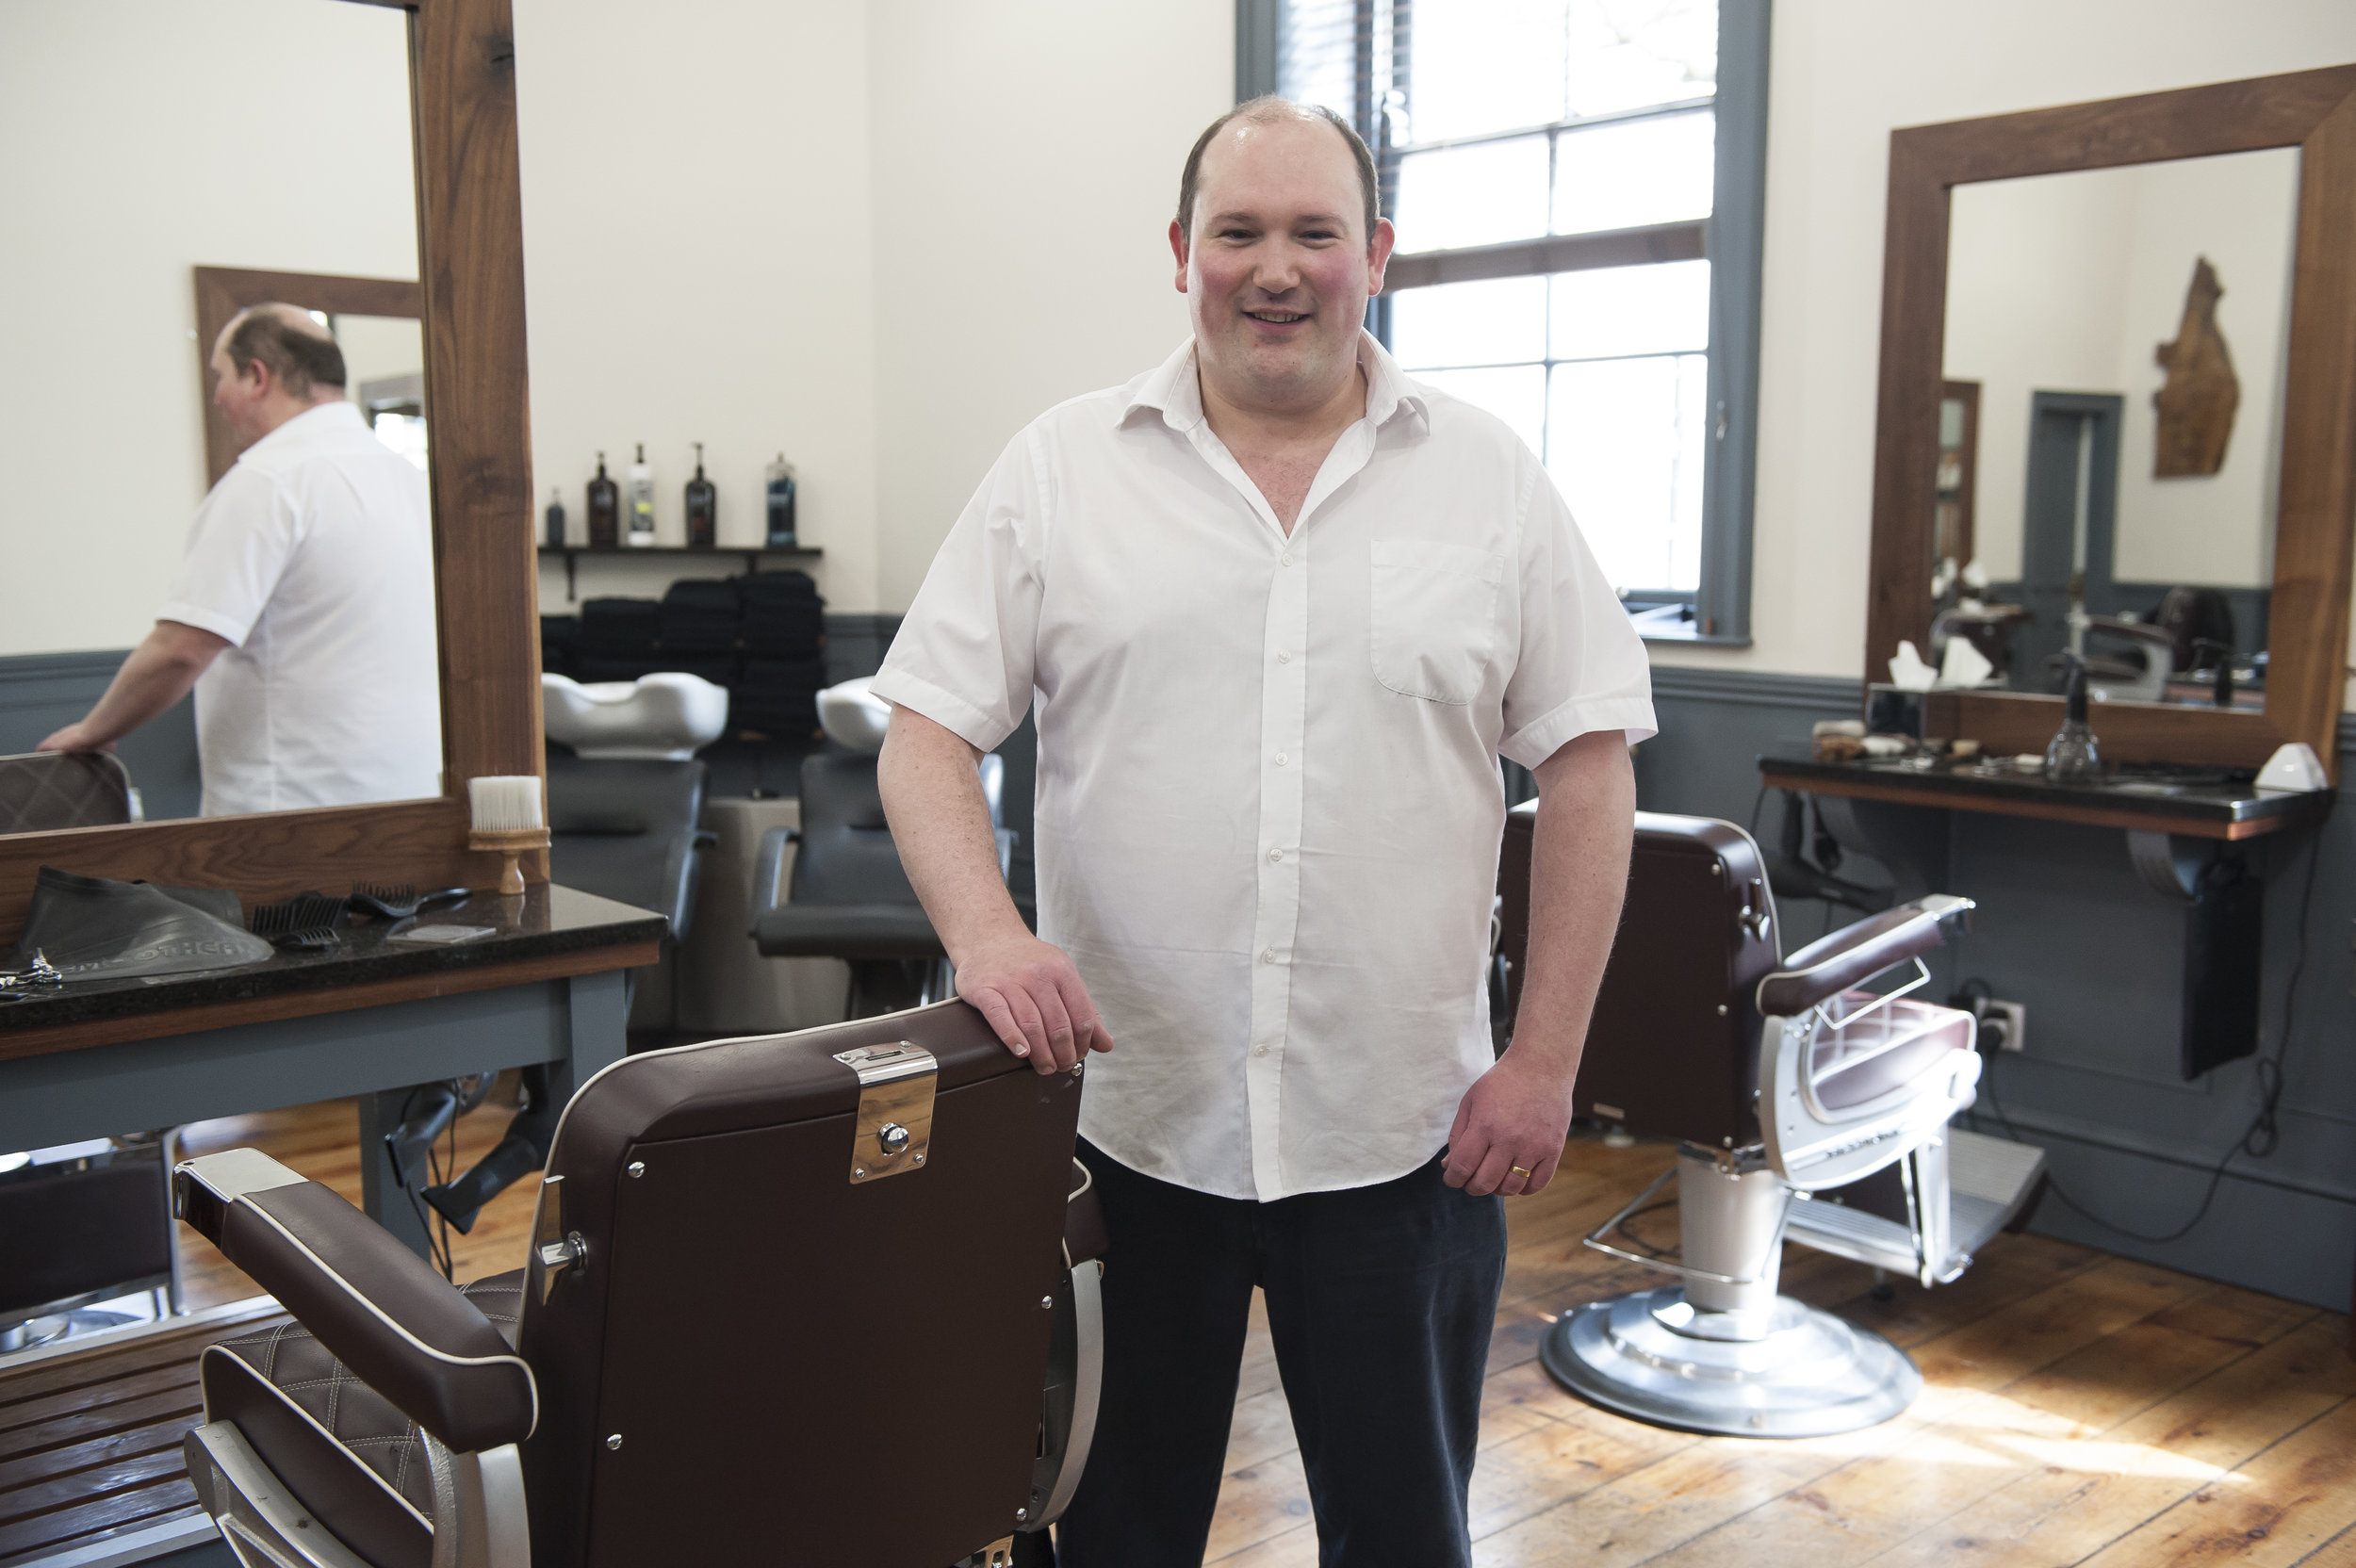 Established in July 1997 by Gary Bazley, the vision was to create a hairdressers that specialised in men only. Hacketts offers a unique hairdressing experience in a relaxed environment with a superb customer orientated service at a reasonable price.  We are just five minutes walk away from the hustle and bustle of the city centre. Situated just inside the foyer of the main entrance to Green Park Station,Bath. Green Park Station has a very relaxed atmosphere and this is the kind of ambience that we have strived to create within the salon. Situated in one of the original spacious Victorian rooms of the station we have managed to blend the traditional with the contemporary; bringing together such features as authentic barber chairs and hand-crafted furnishings that echo the iron and wood structure of the station itself.  Hacketts is open Monday to Saturday with late night openings until 8pm on a Wednesday & Thursday . We have an appointment system that means you can arrange your haircut within your day and therefore have no need to sit and wait. We also offer a text messaging service so you never miss an appointment as we will text you the day before to remind you. There is always magazines, daily papers for you to browse through and we offer complimentary tea, coffee and soft drinks and even a beer with your appointment.  If you are looking for a haircut where you can sit down and chill out and watch the world go by then look no further than Hacketts.